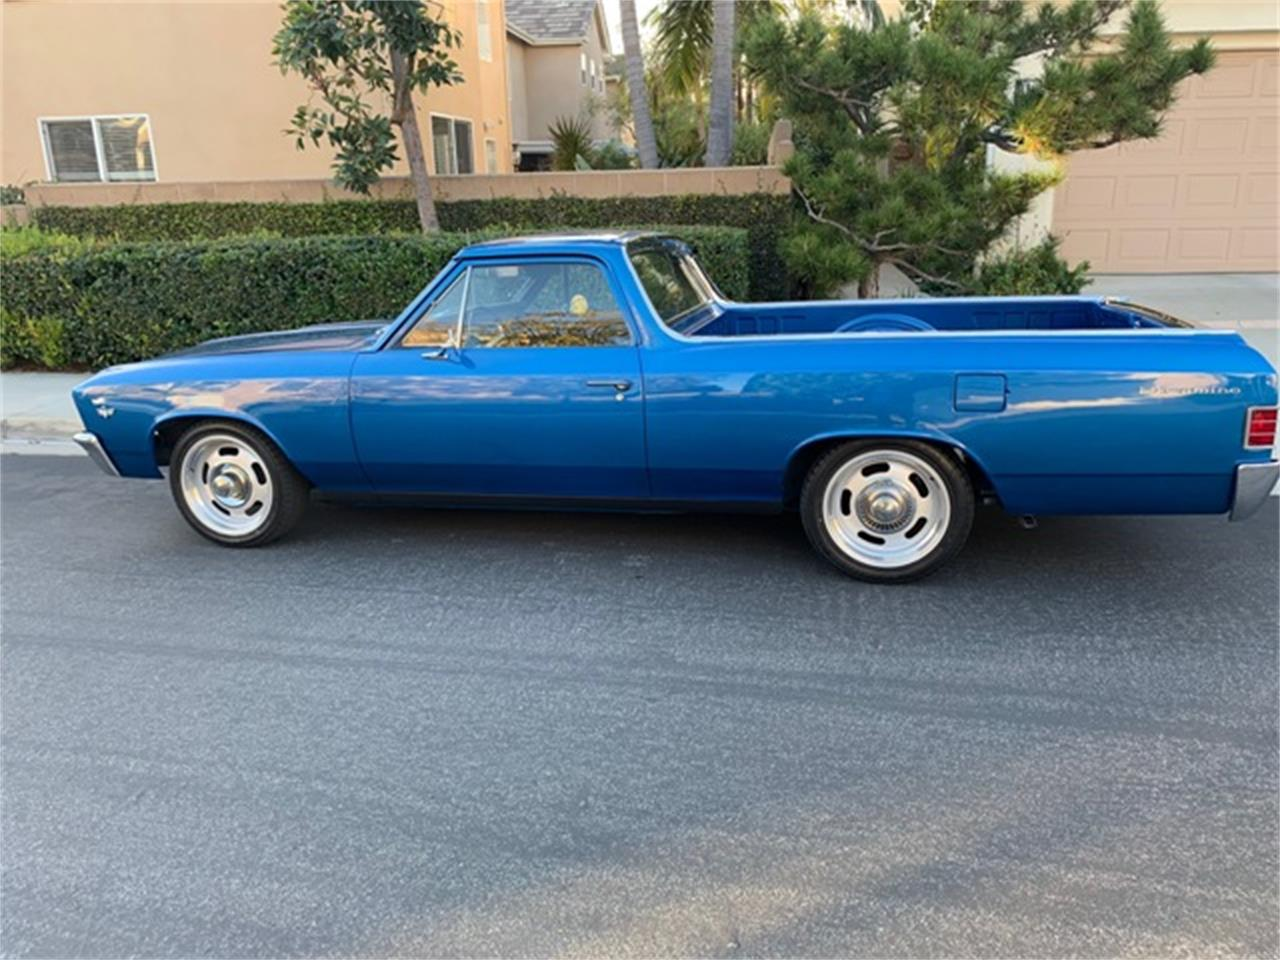 1967 Chevrolet El Camino (CC-1273907) for sale in Palm Springs, California